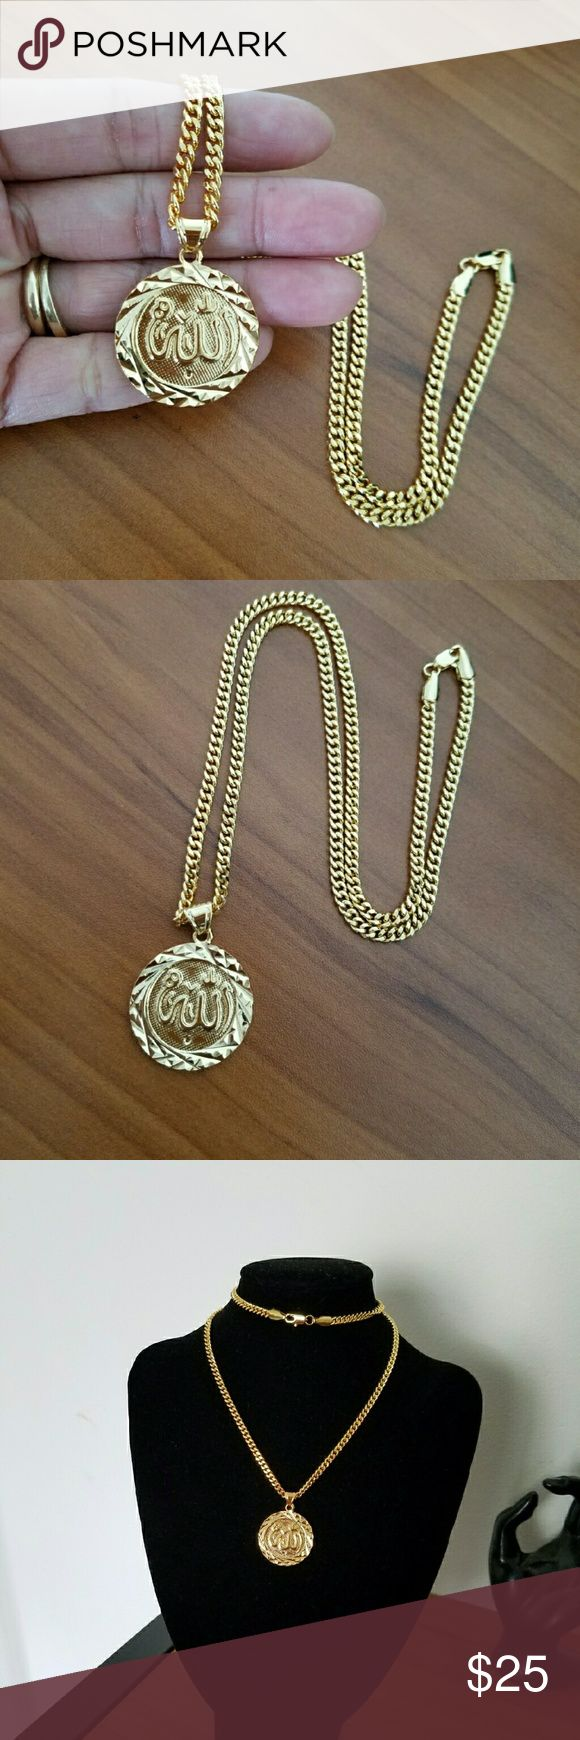 """18K Gold Filled Arabic Style Necklace It's new without tag 18k gold filled men's Arabic Style Necklace  Size: 22""""long  No stamped  Hypoallergenic,  Nickel free Accessories Jewelry"""